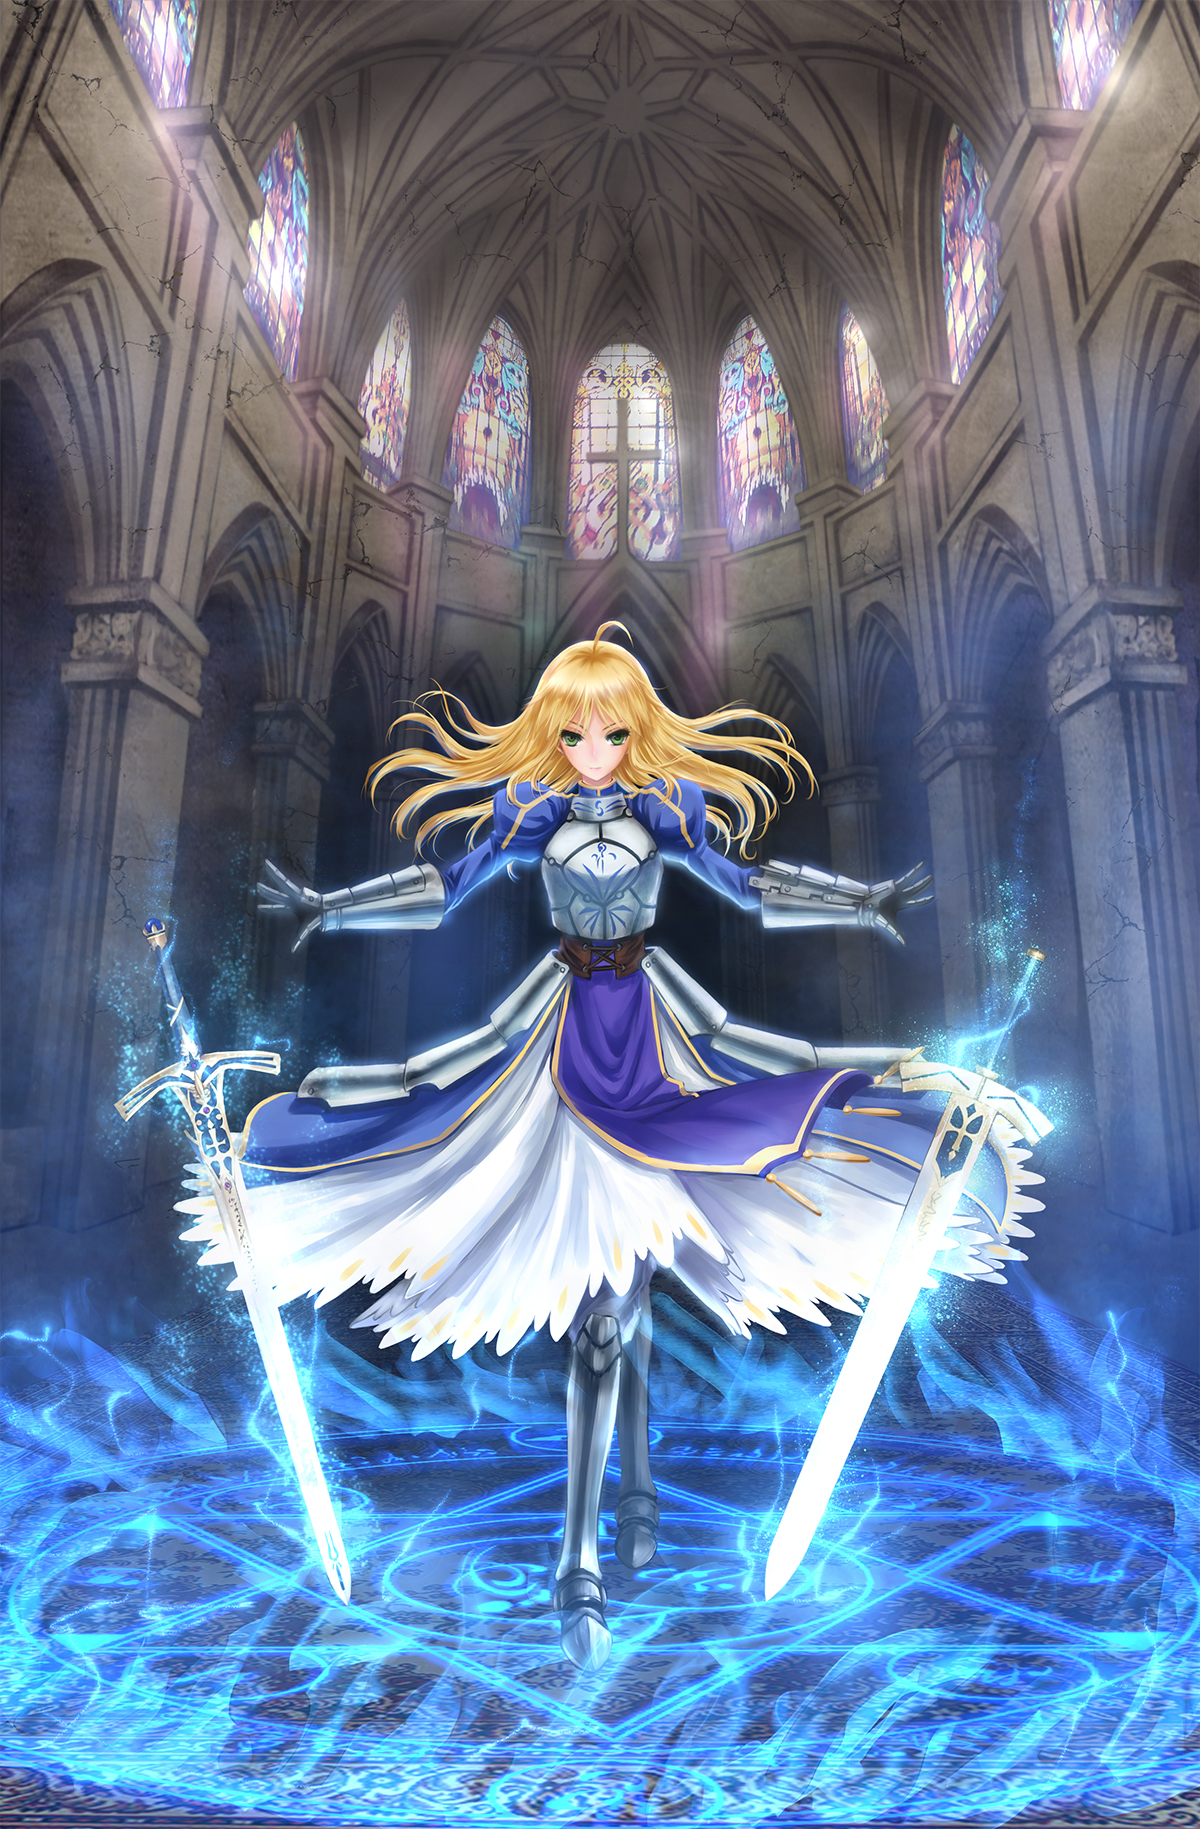 Saber (Fate/stay night) Mobile Wallpaper #1357274 ...